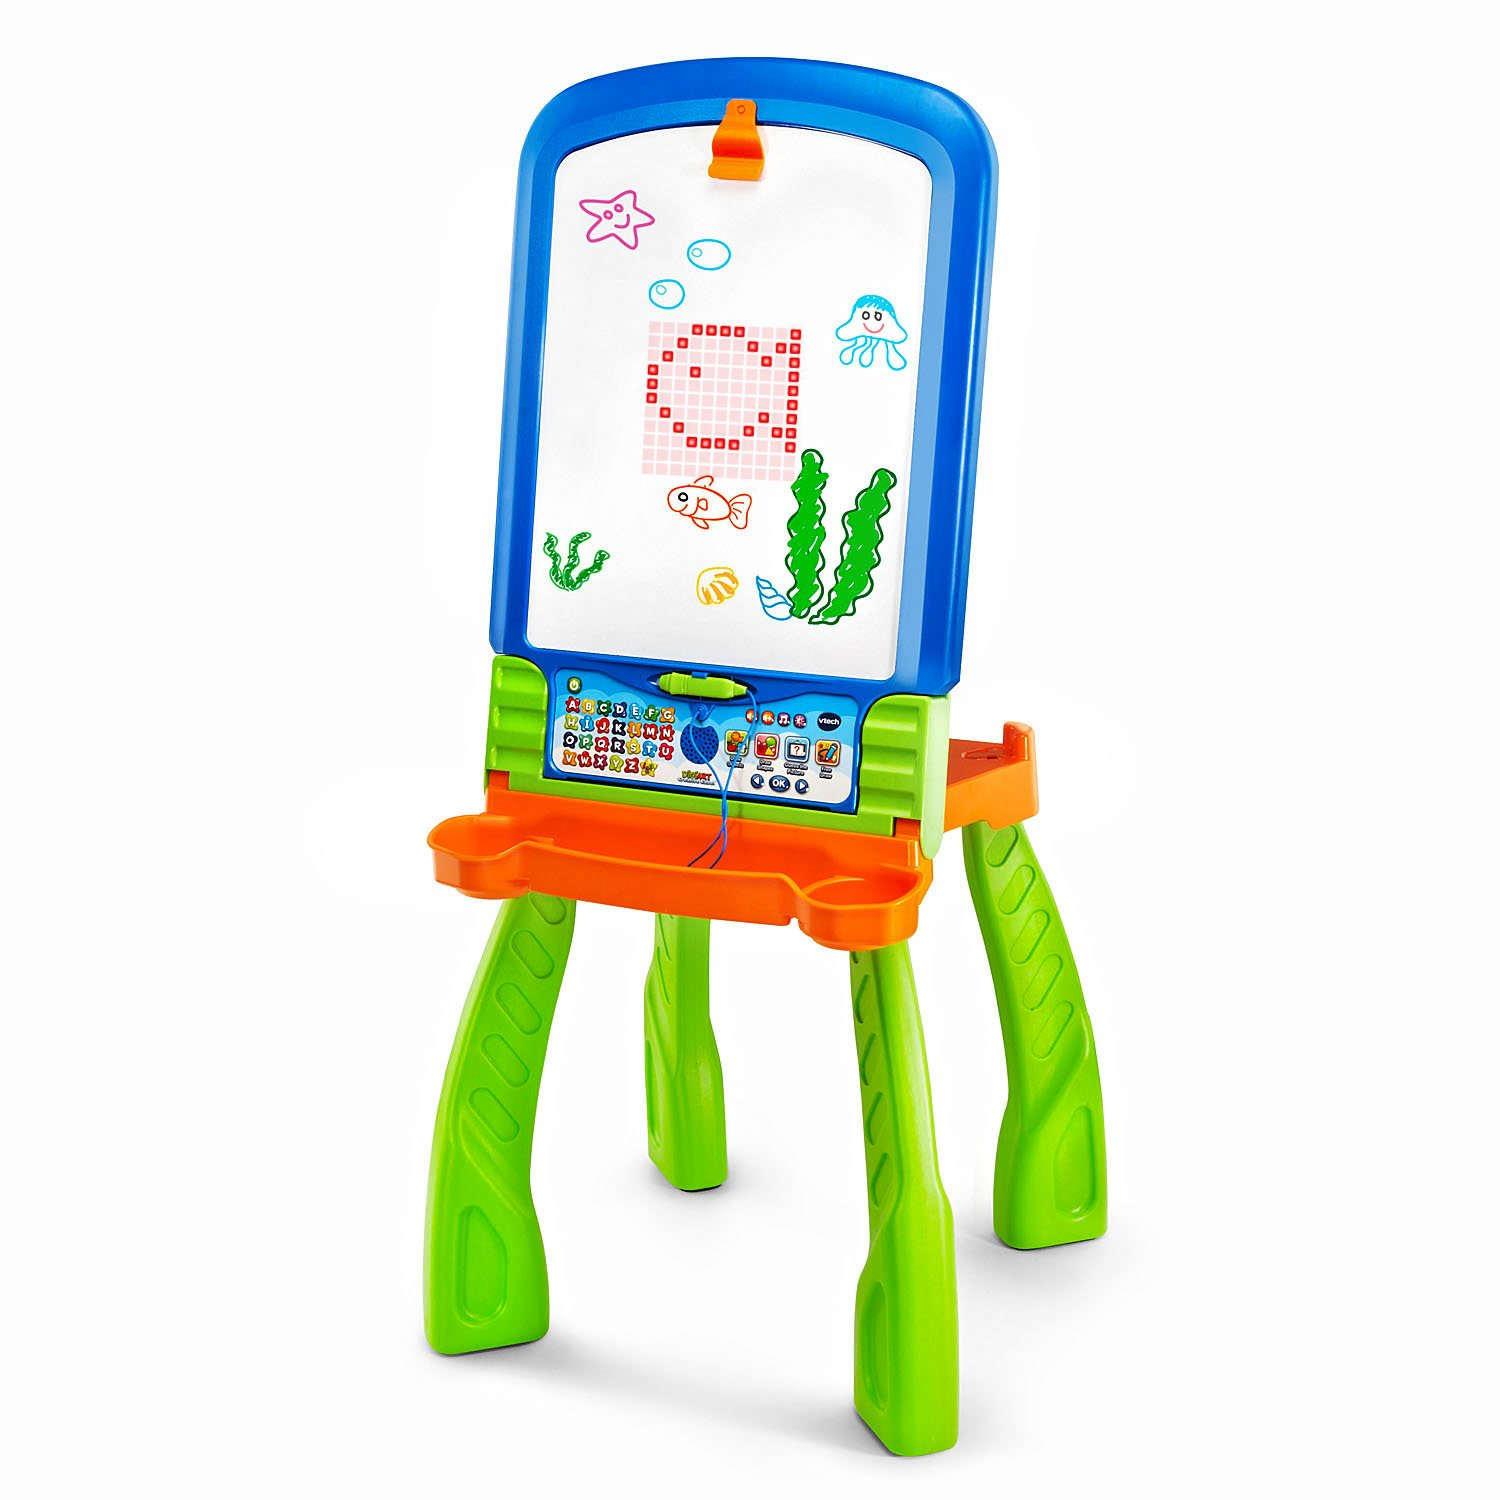 Amazon VTech DigiArt Creative Easel Toys & Games